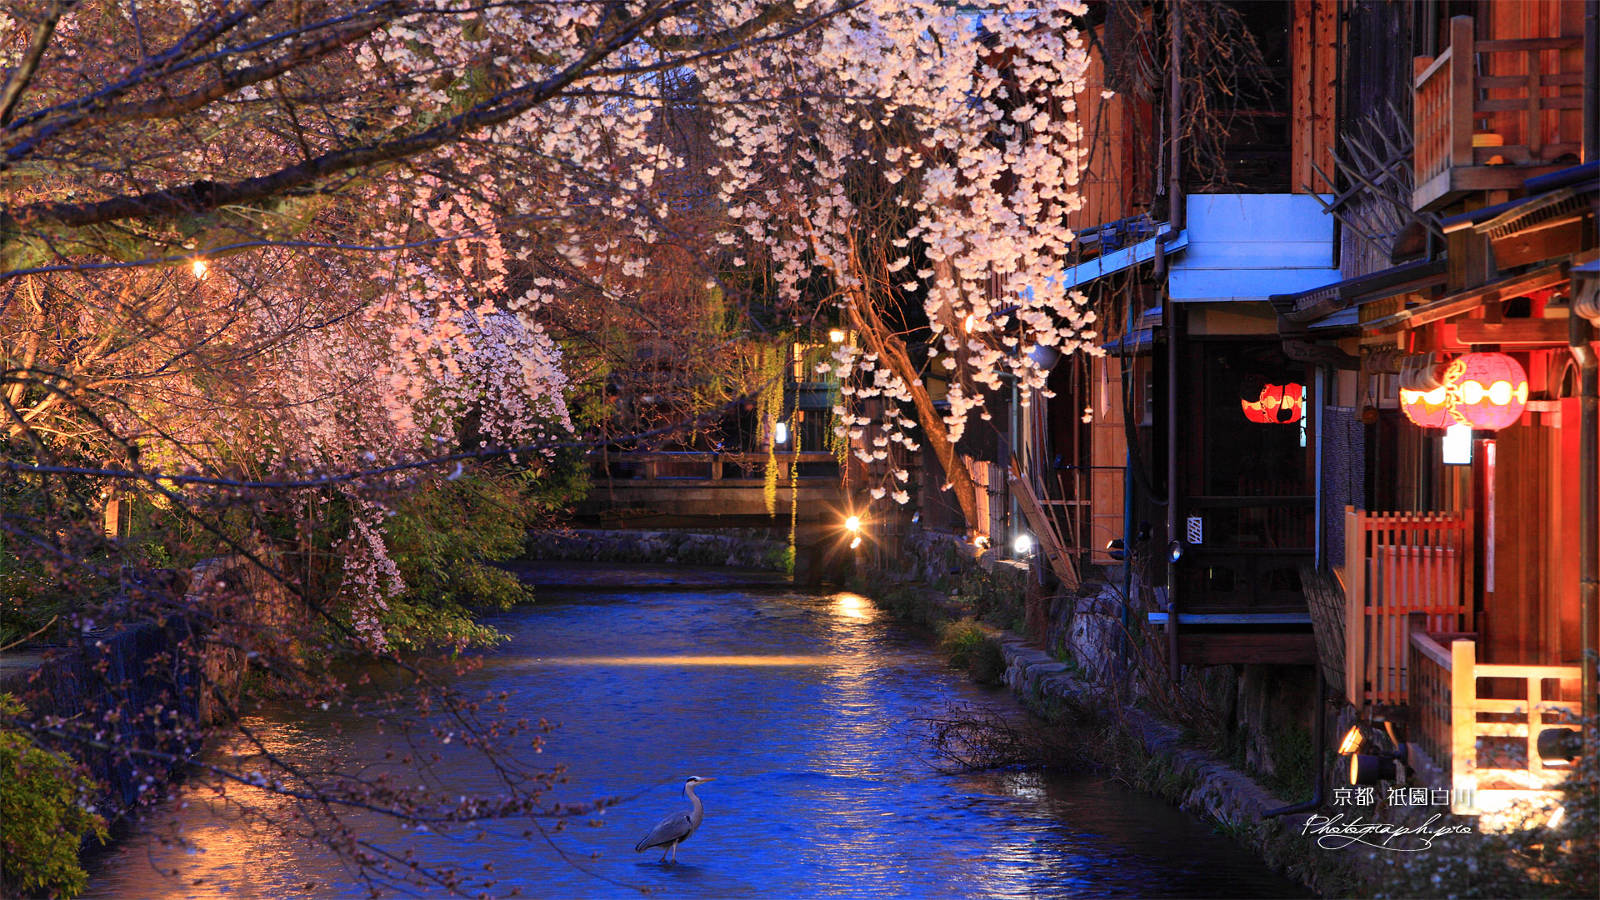 Kyoto travel guide area by area: Gion - youinJapan.net